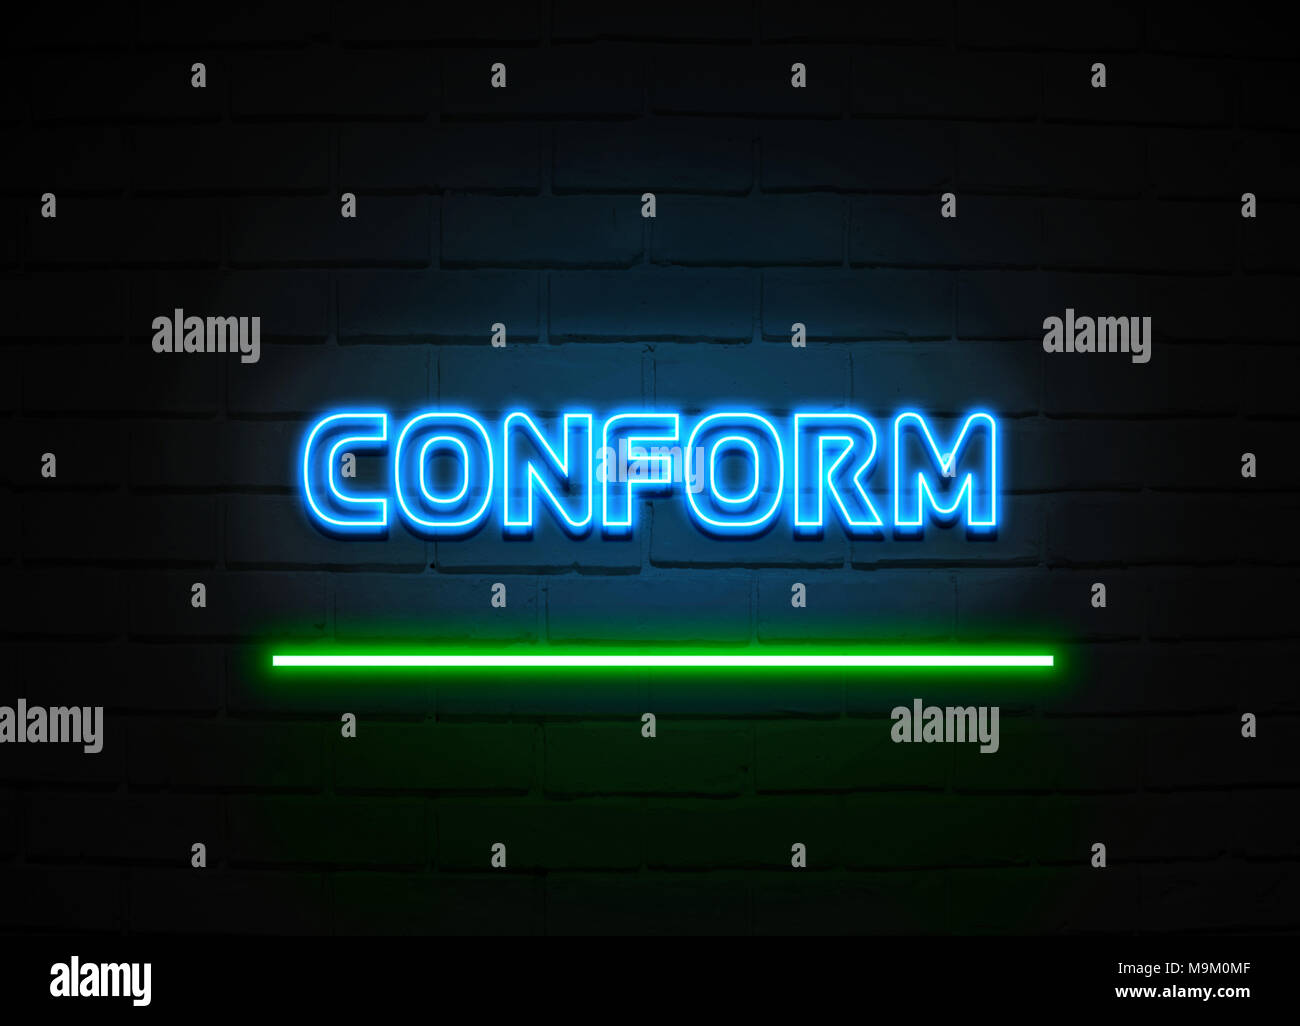 Conform neon sign - Glowing Neon Sign on brickwall wall - 3D rendered royalty free stock illustration. - Stock Image